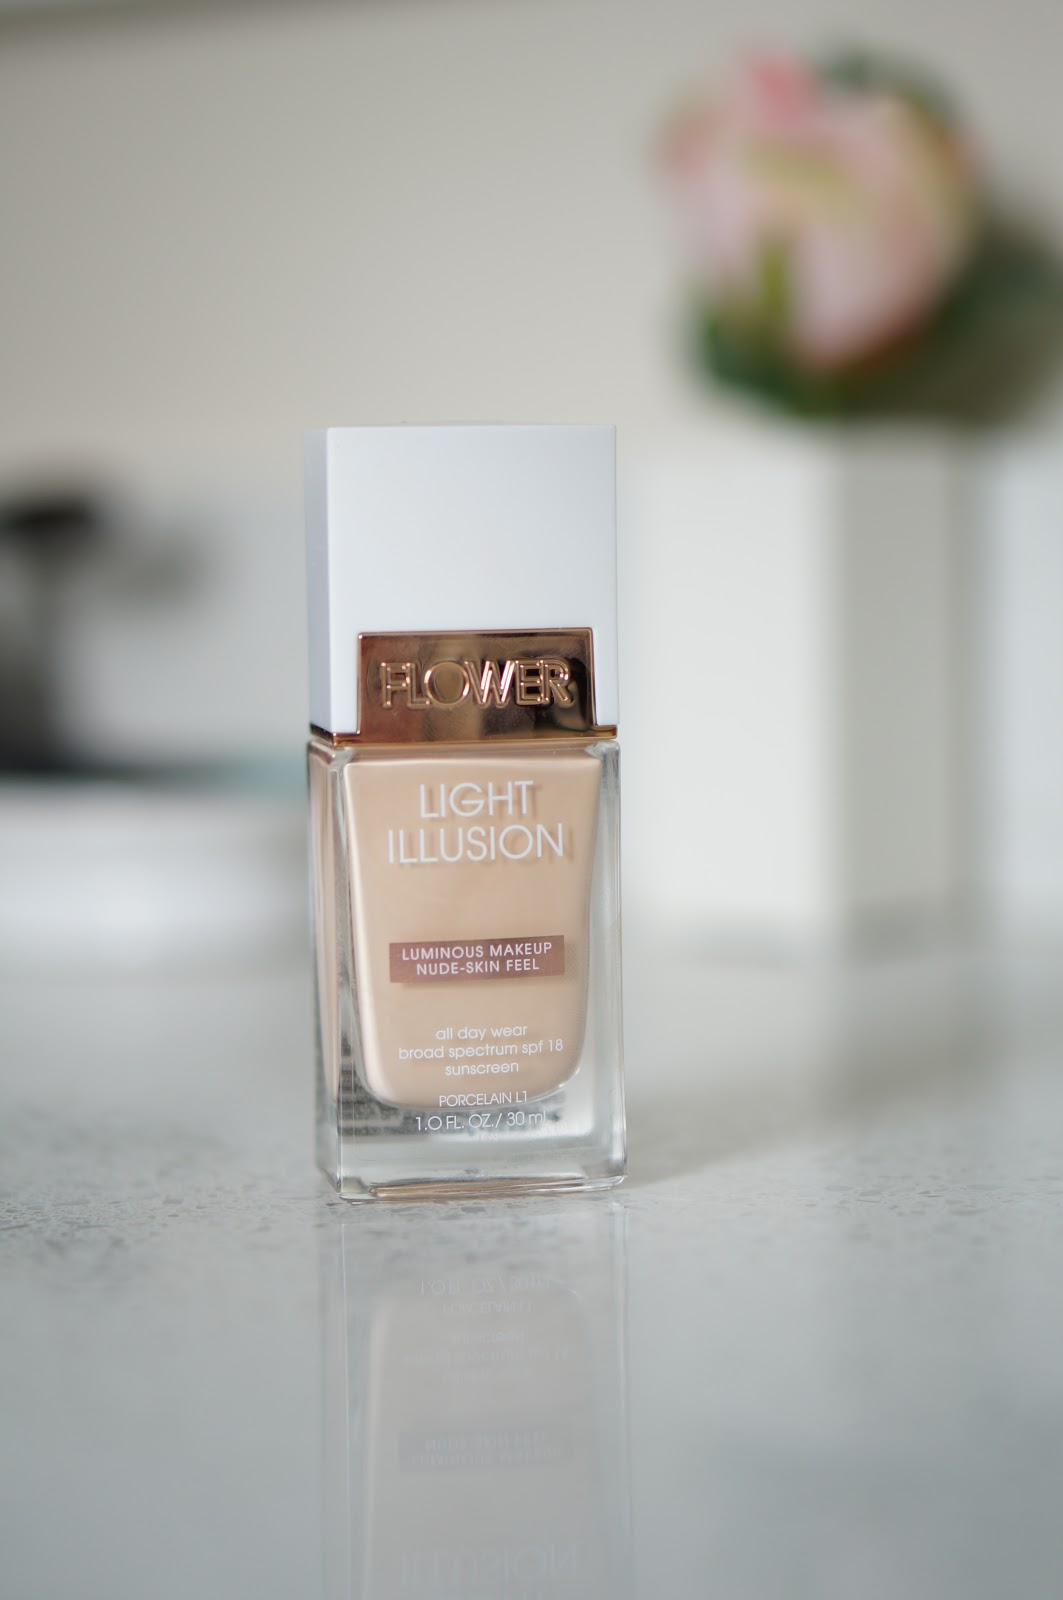 Popular North Carolina style blogger Rebecca Lately shares her review of Flower Beauty Light Illusion Foundation.  Click here to read her thoughts!